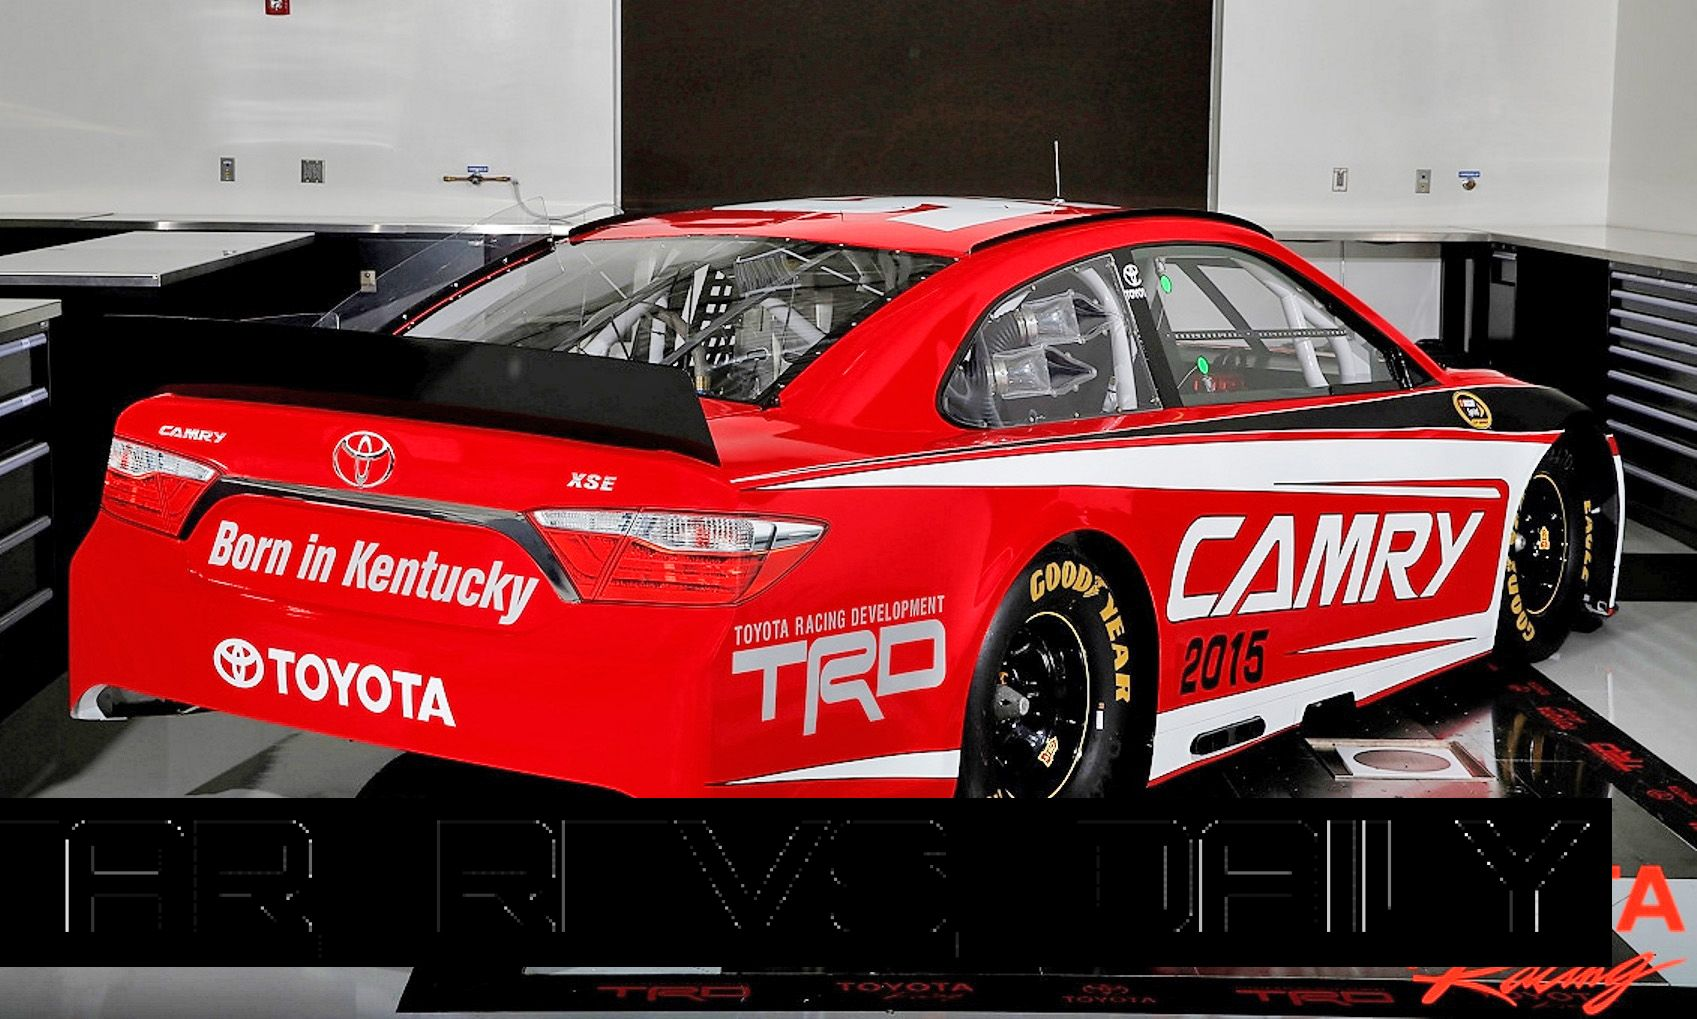 Toyota Ft 1 >> Gen-6 Toyota Camry NASCAR Revealed Ahead of 2015 Season